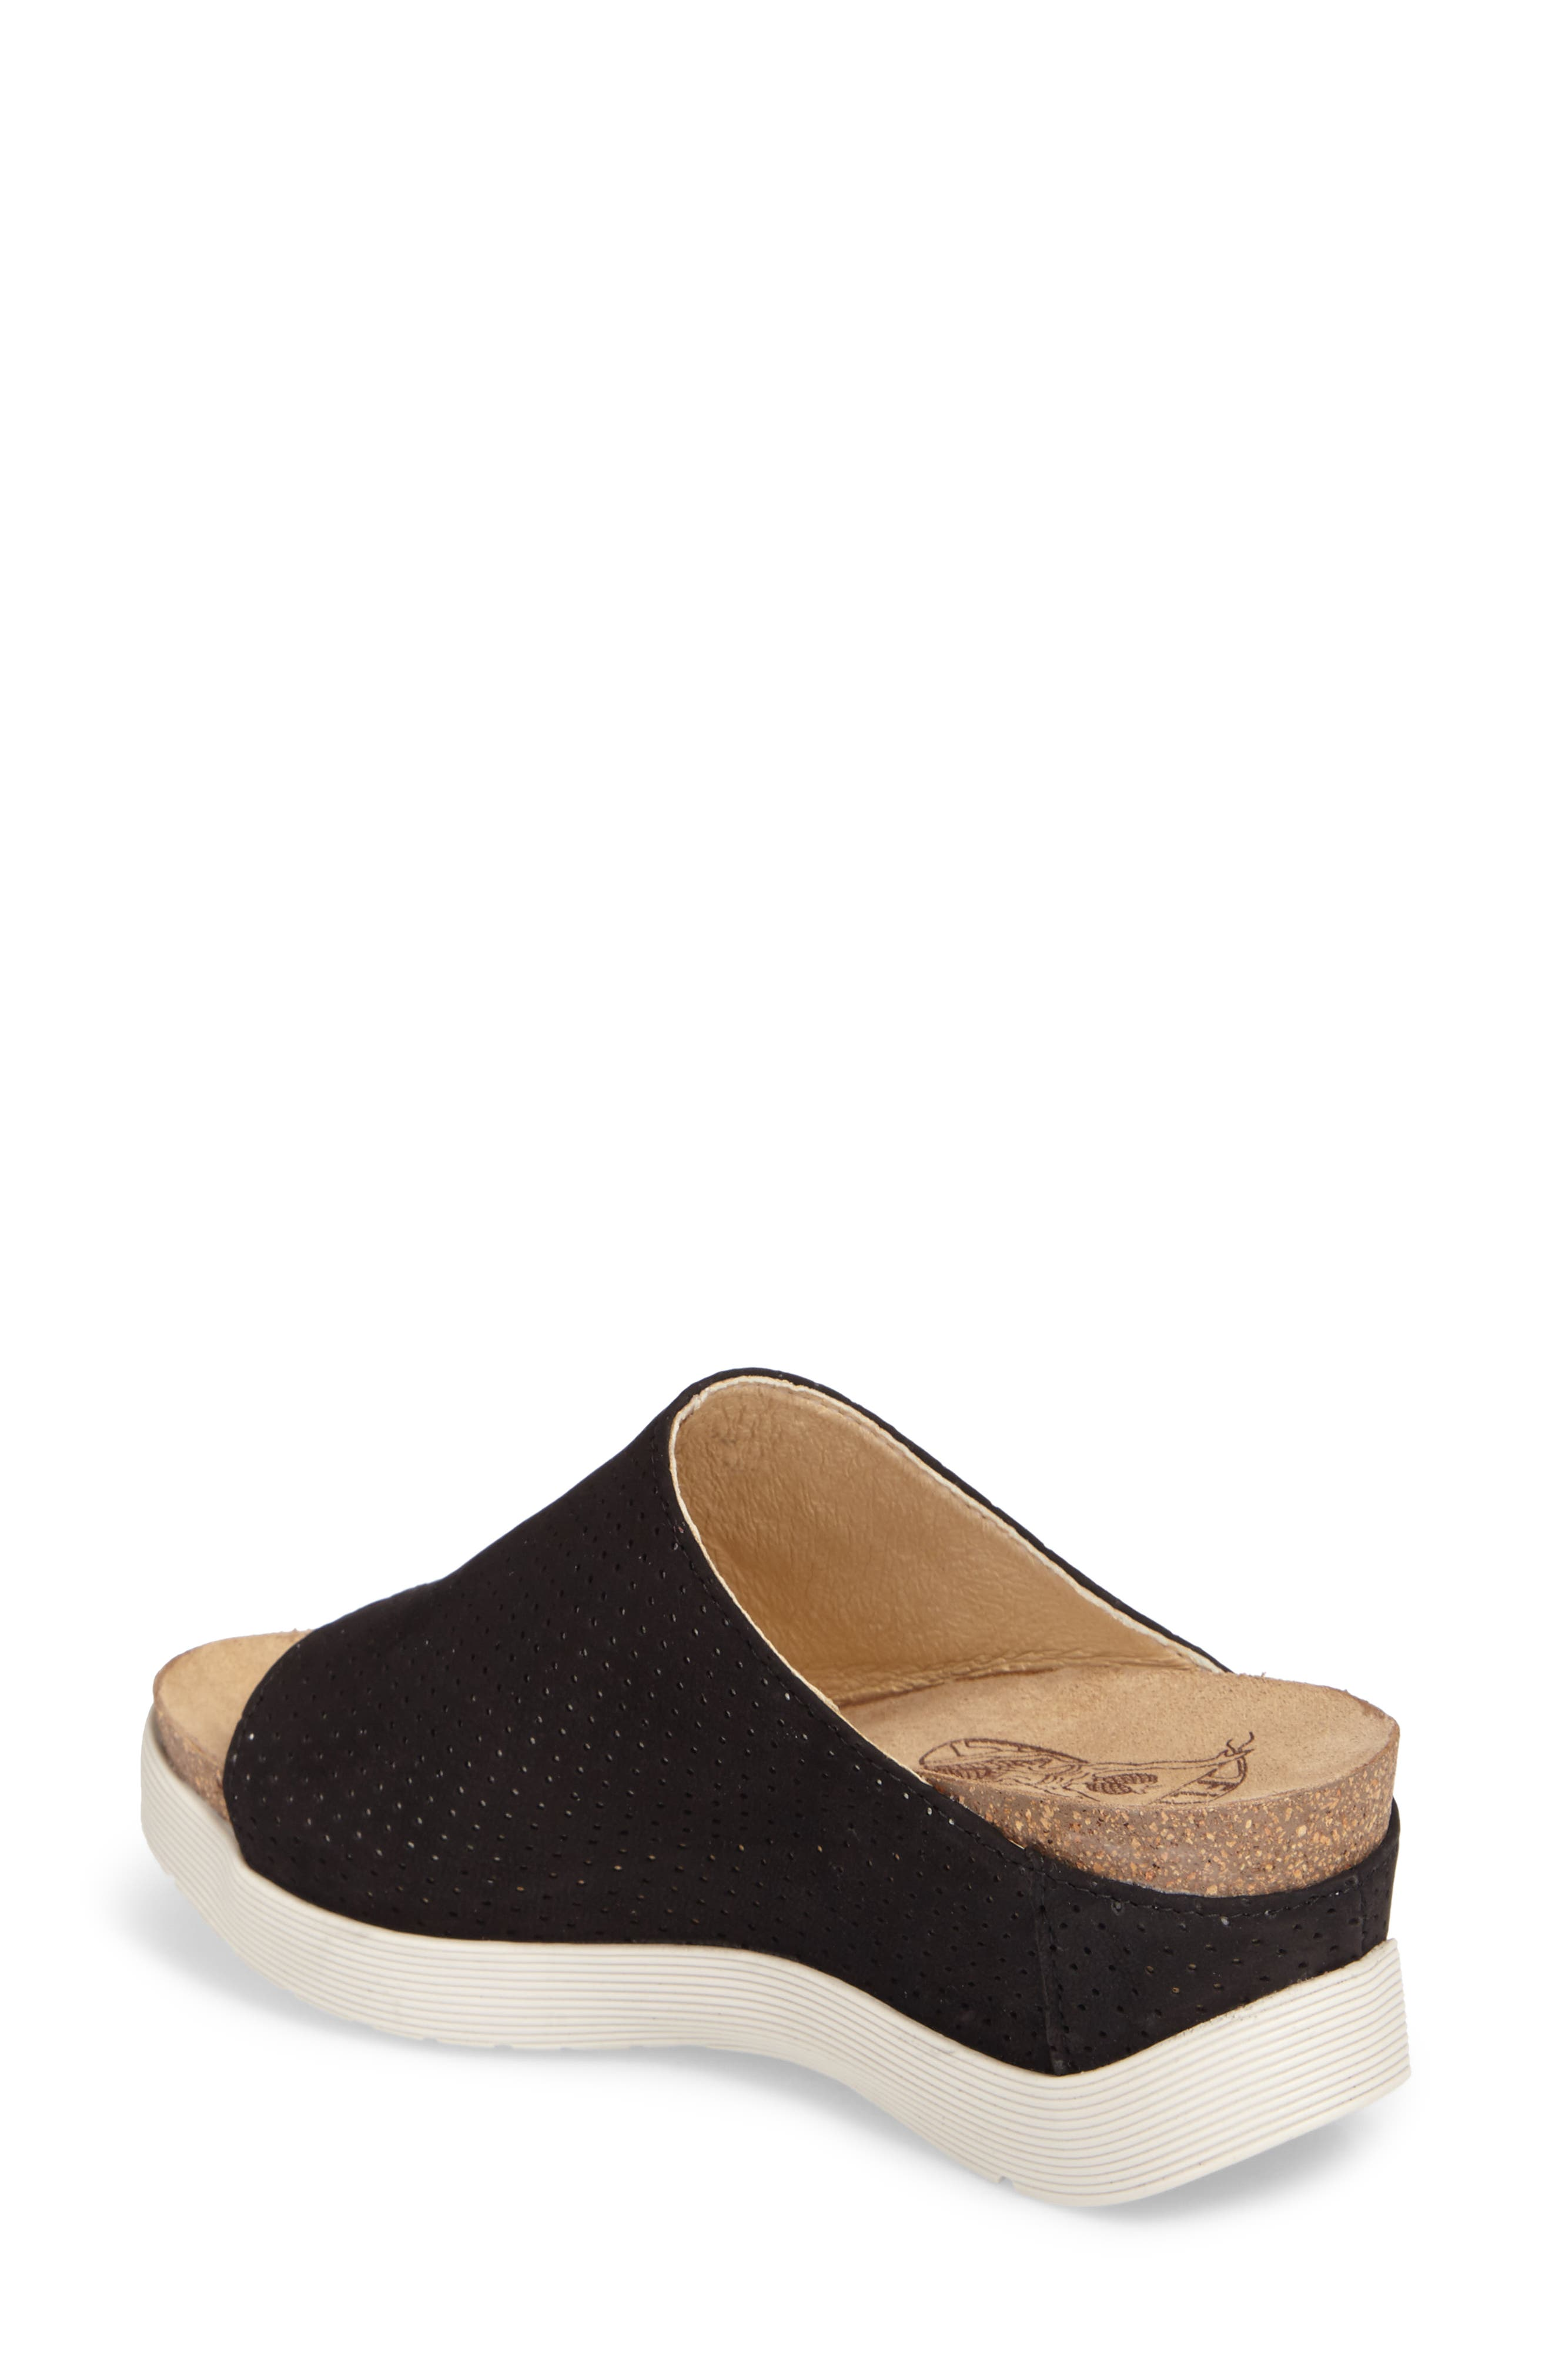 FLY LONDON, Whin Platform Sandal, Alternate thumbnail 2, color, BLACK CUPIDO LEATHER